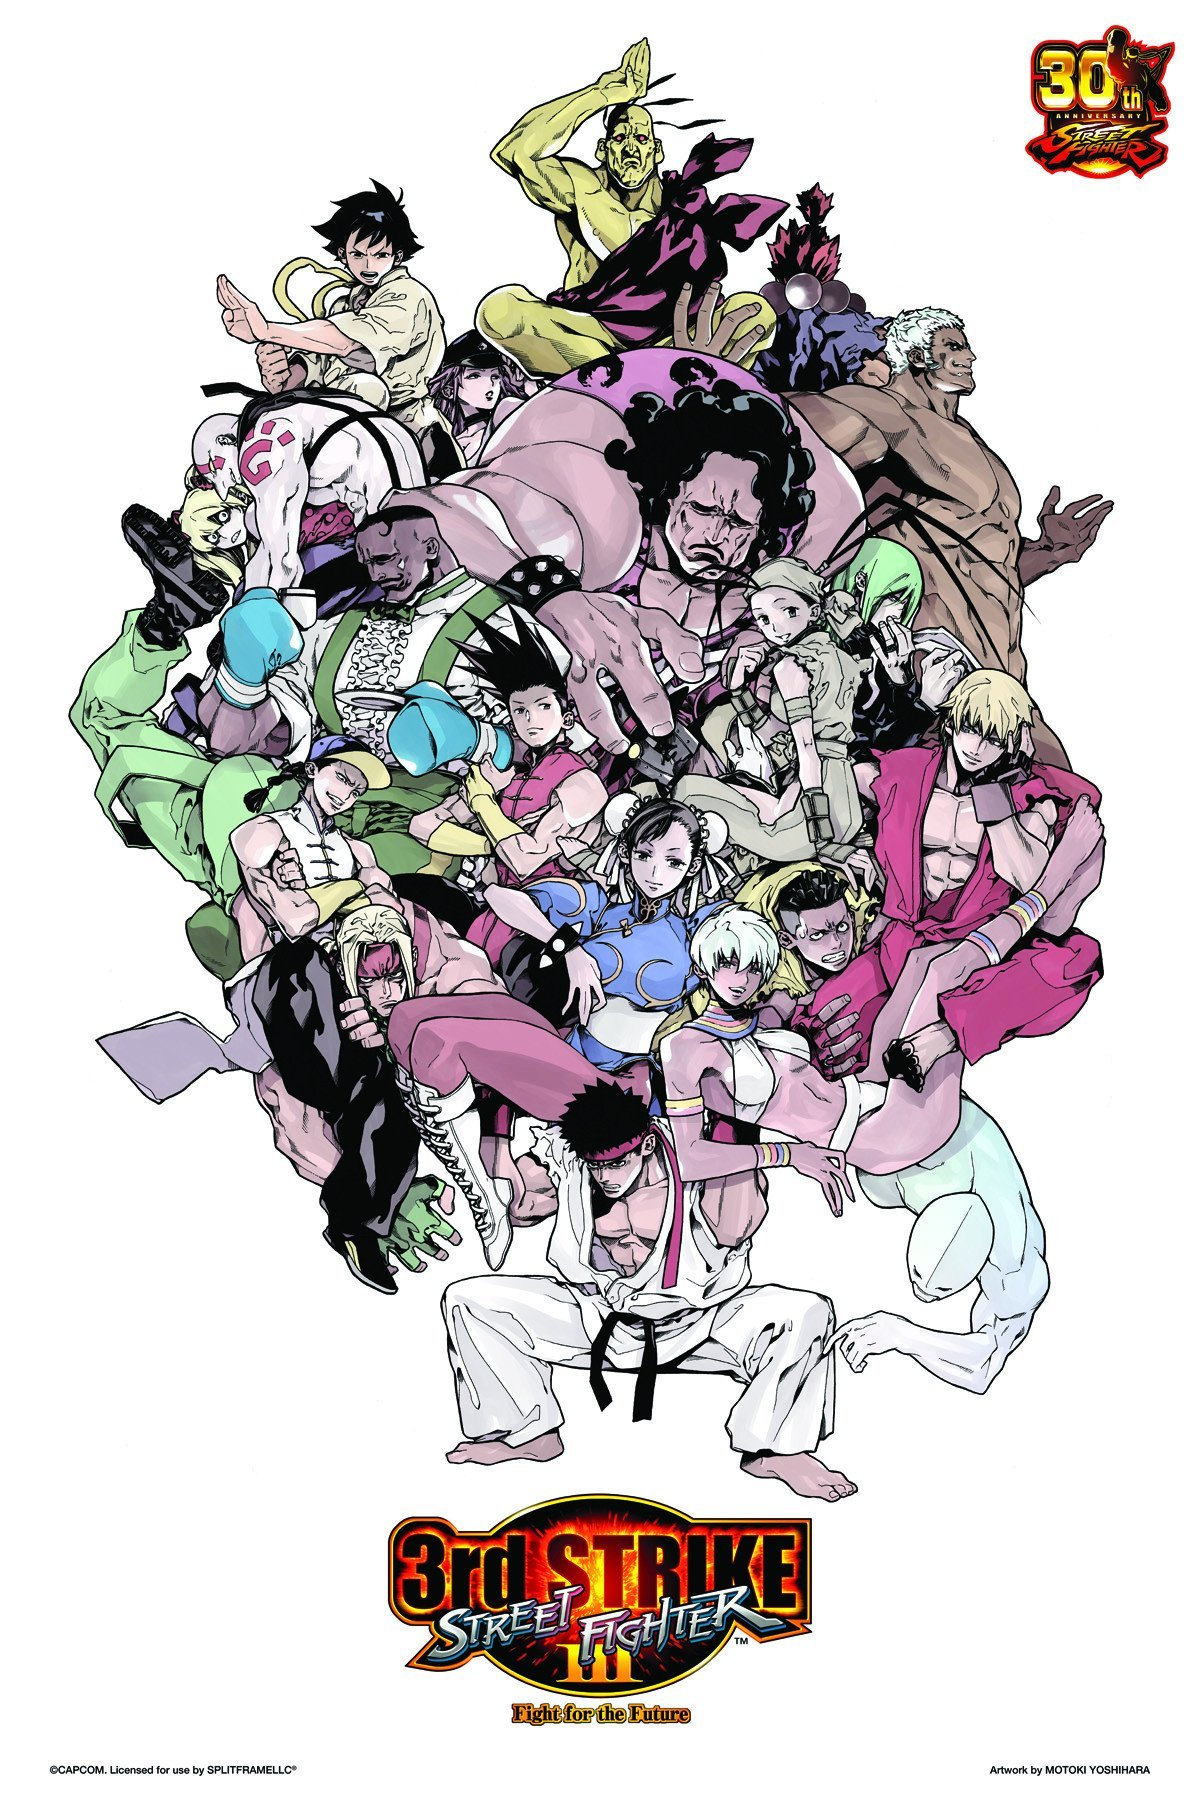 SOUND TEST: Street Fighter III: 3rd Strike: Fight for the Future